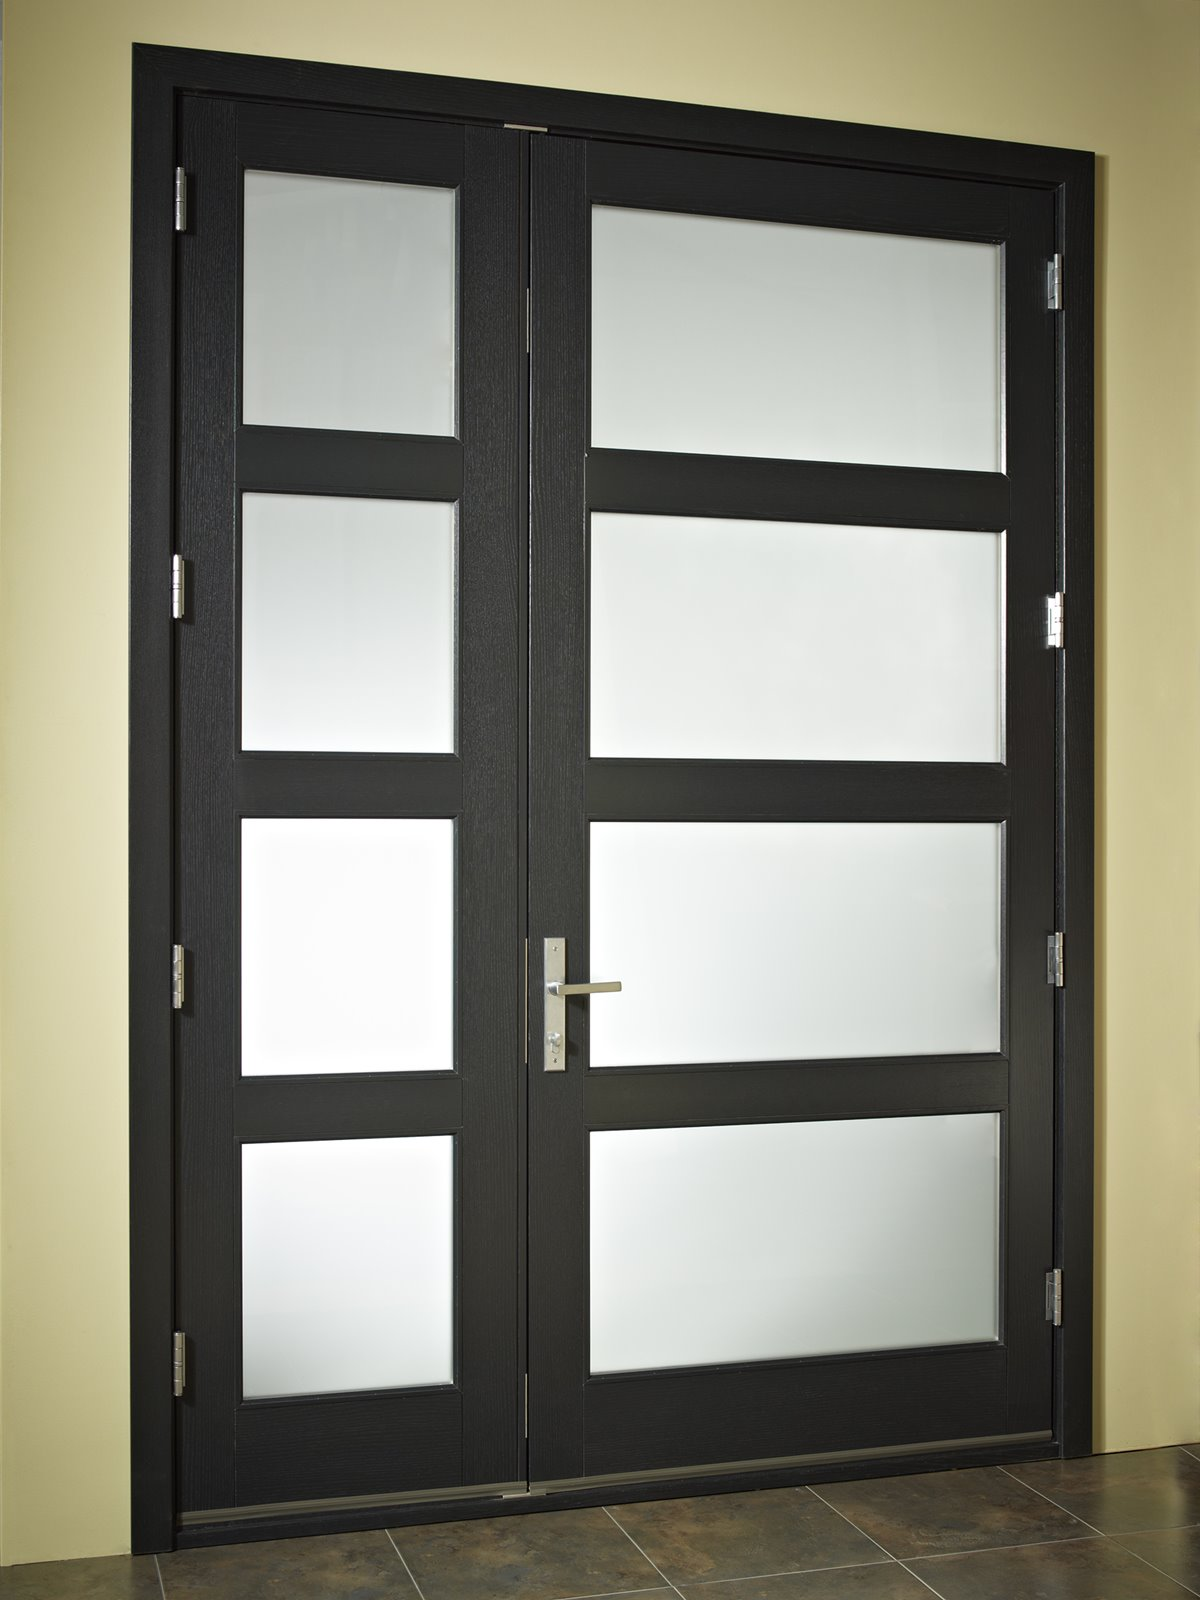 Minimalist Design Idea For Home Door